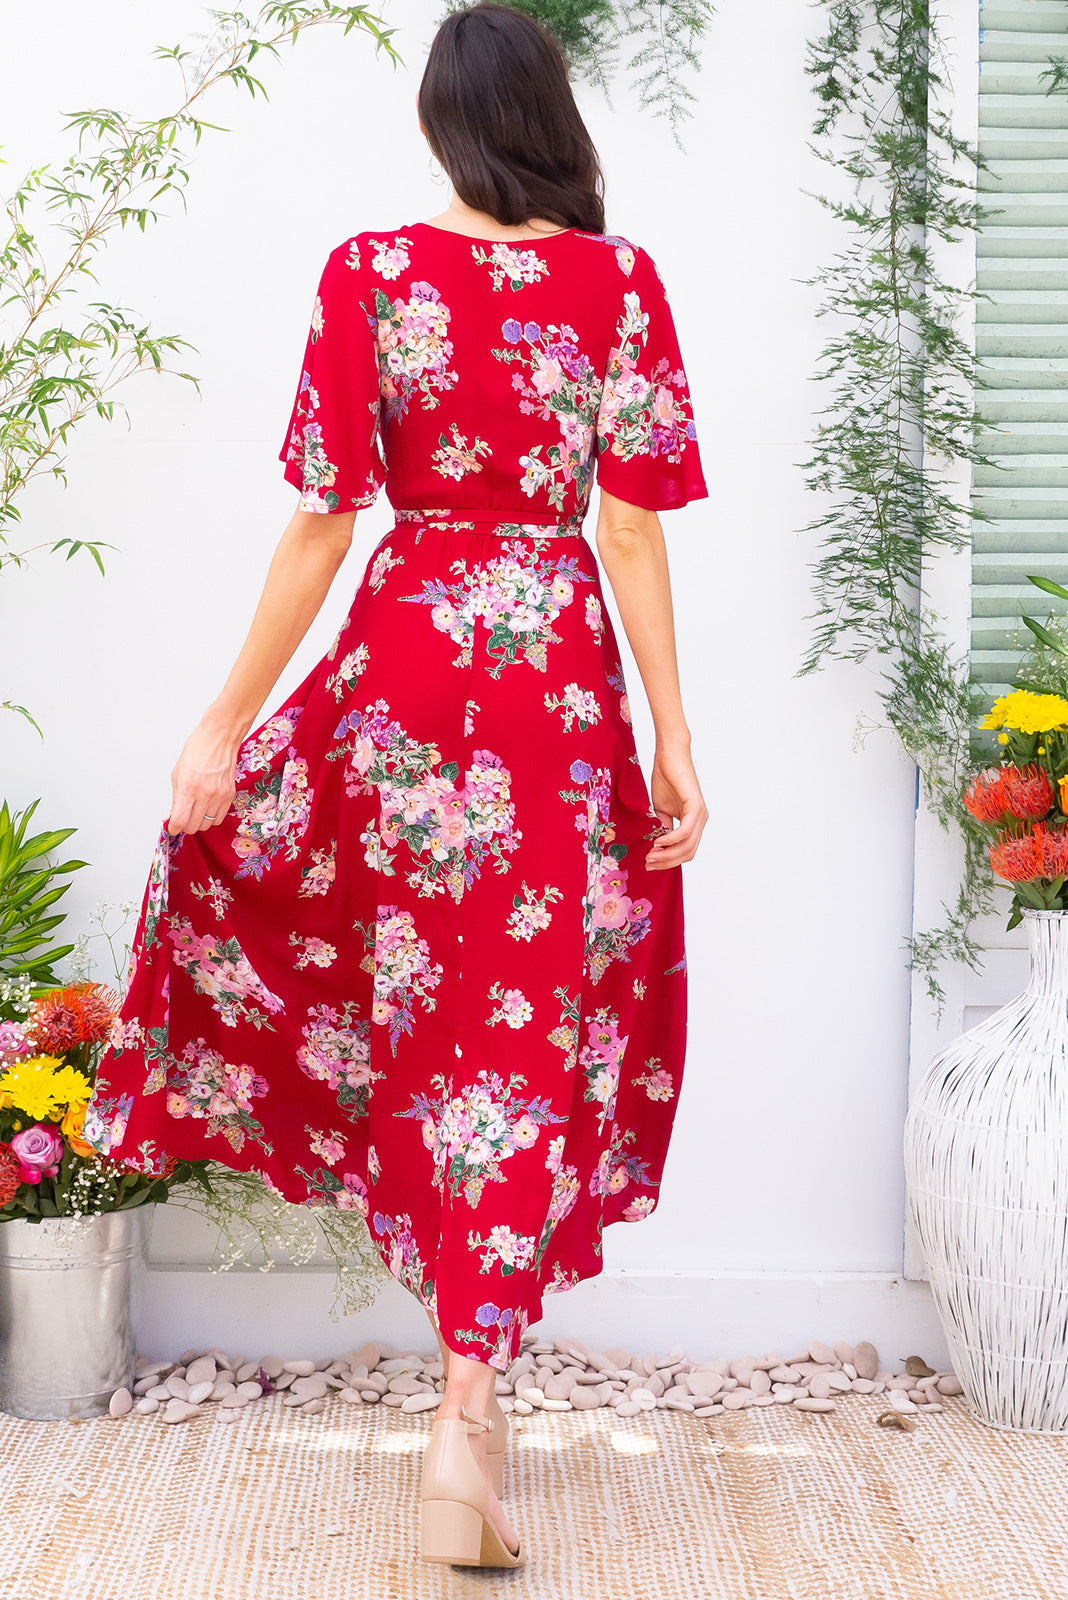 Penny Zinnia Maxi Wrap Dress dress with flutter sleeves in a bright red floral bohemian print on 100% rayon